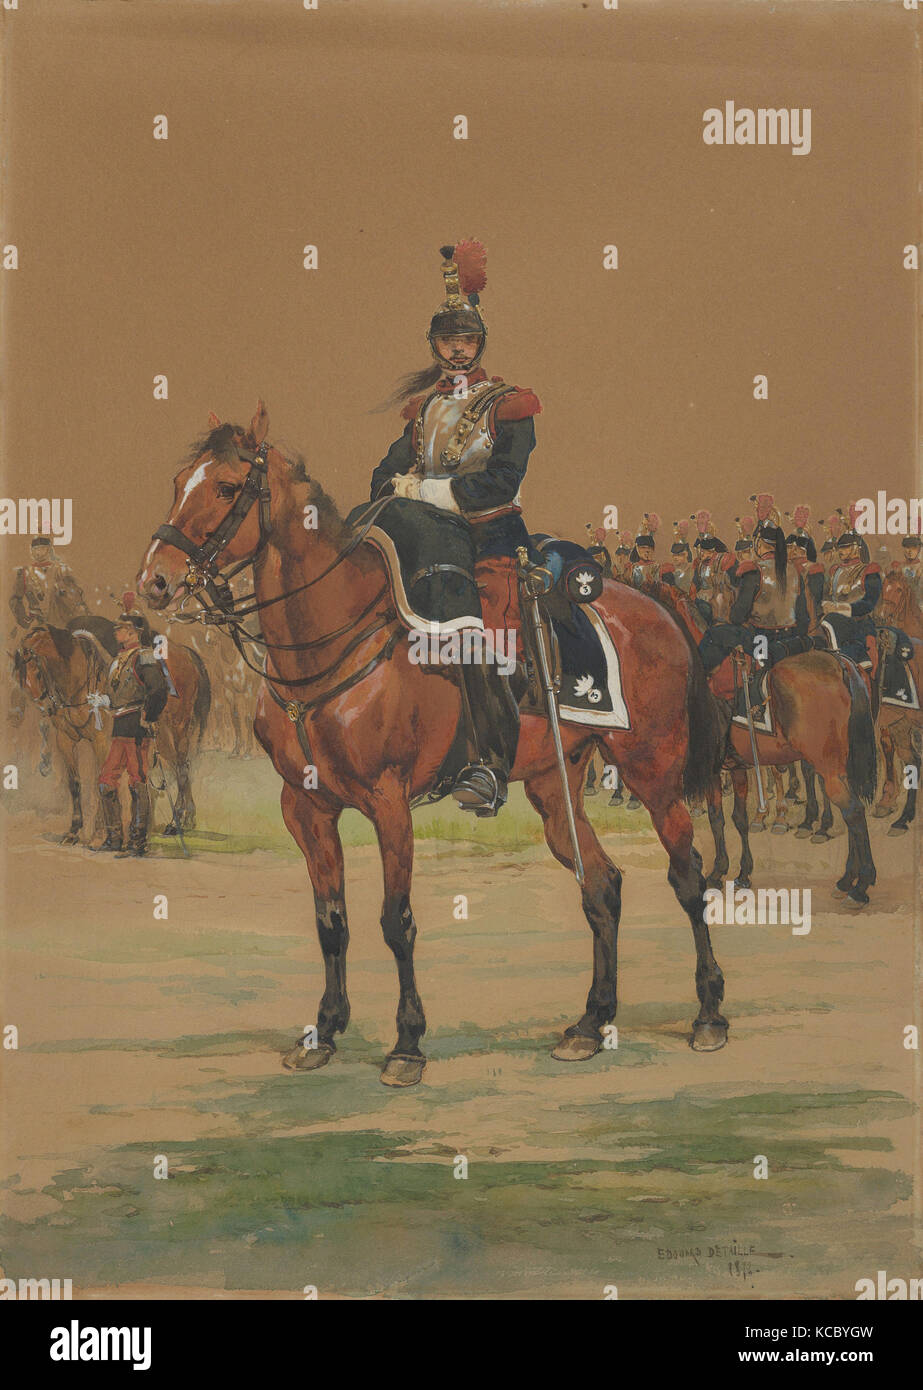 French Cuirassier, 1872, Watercolor, Sheet: 13 3/4 x 9 3/4 in. (34.9 x 24.8cm), Drawings Stock Photo